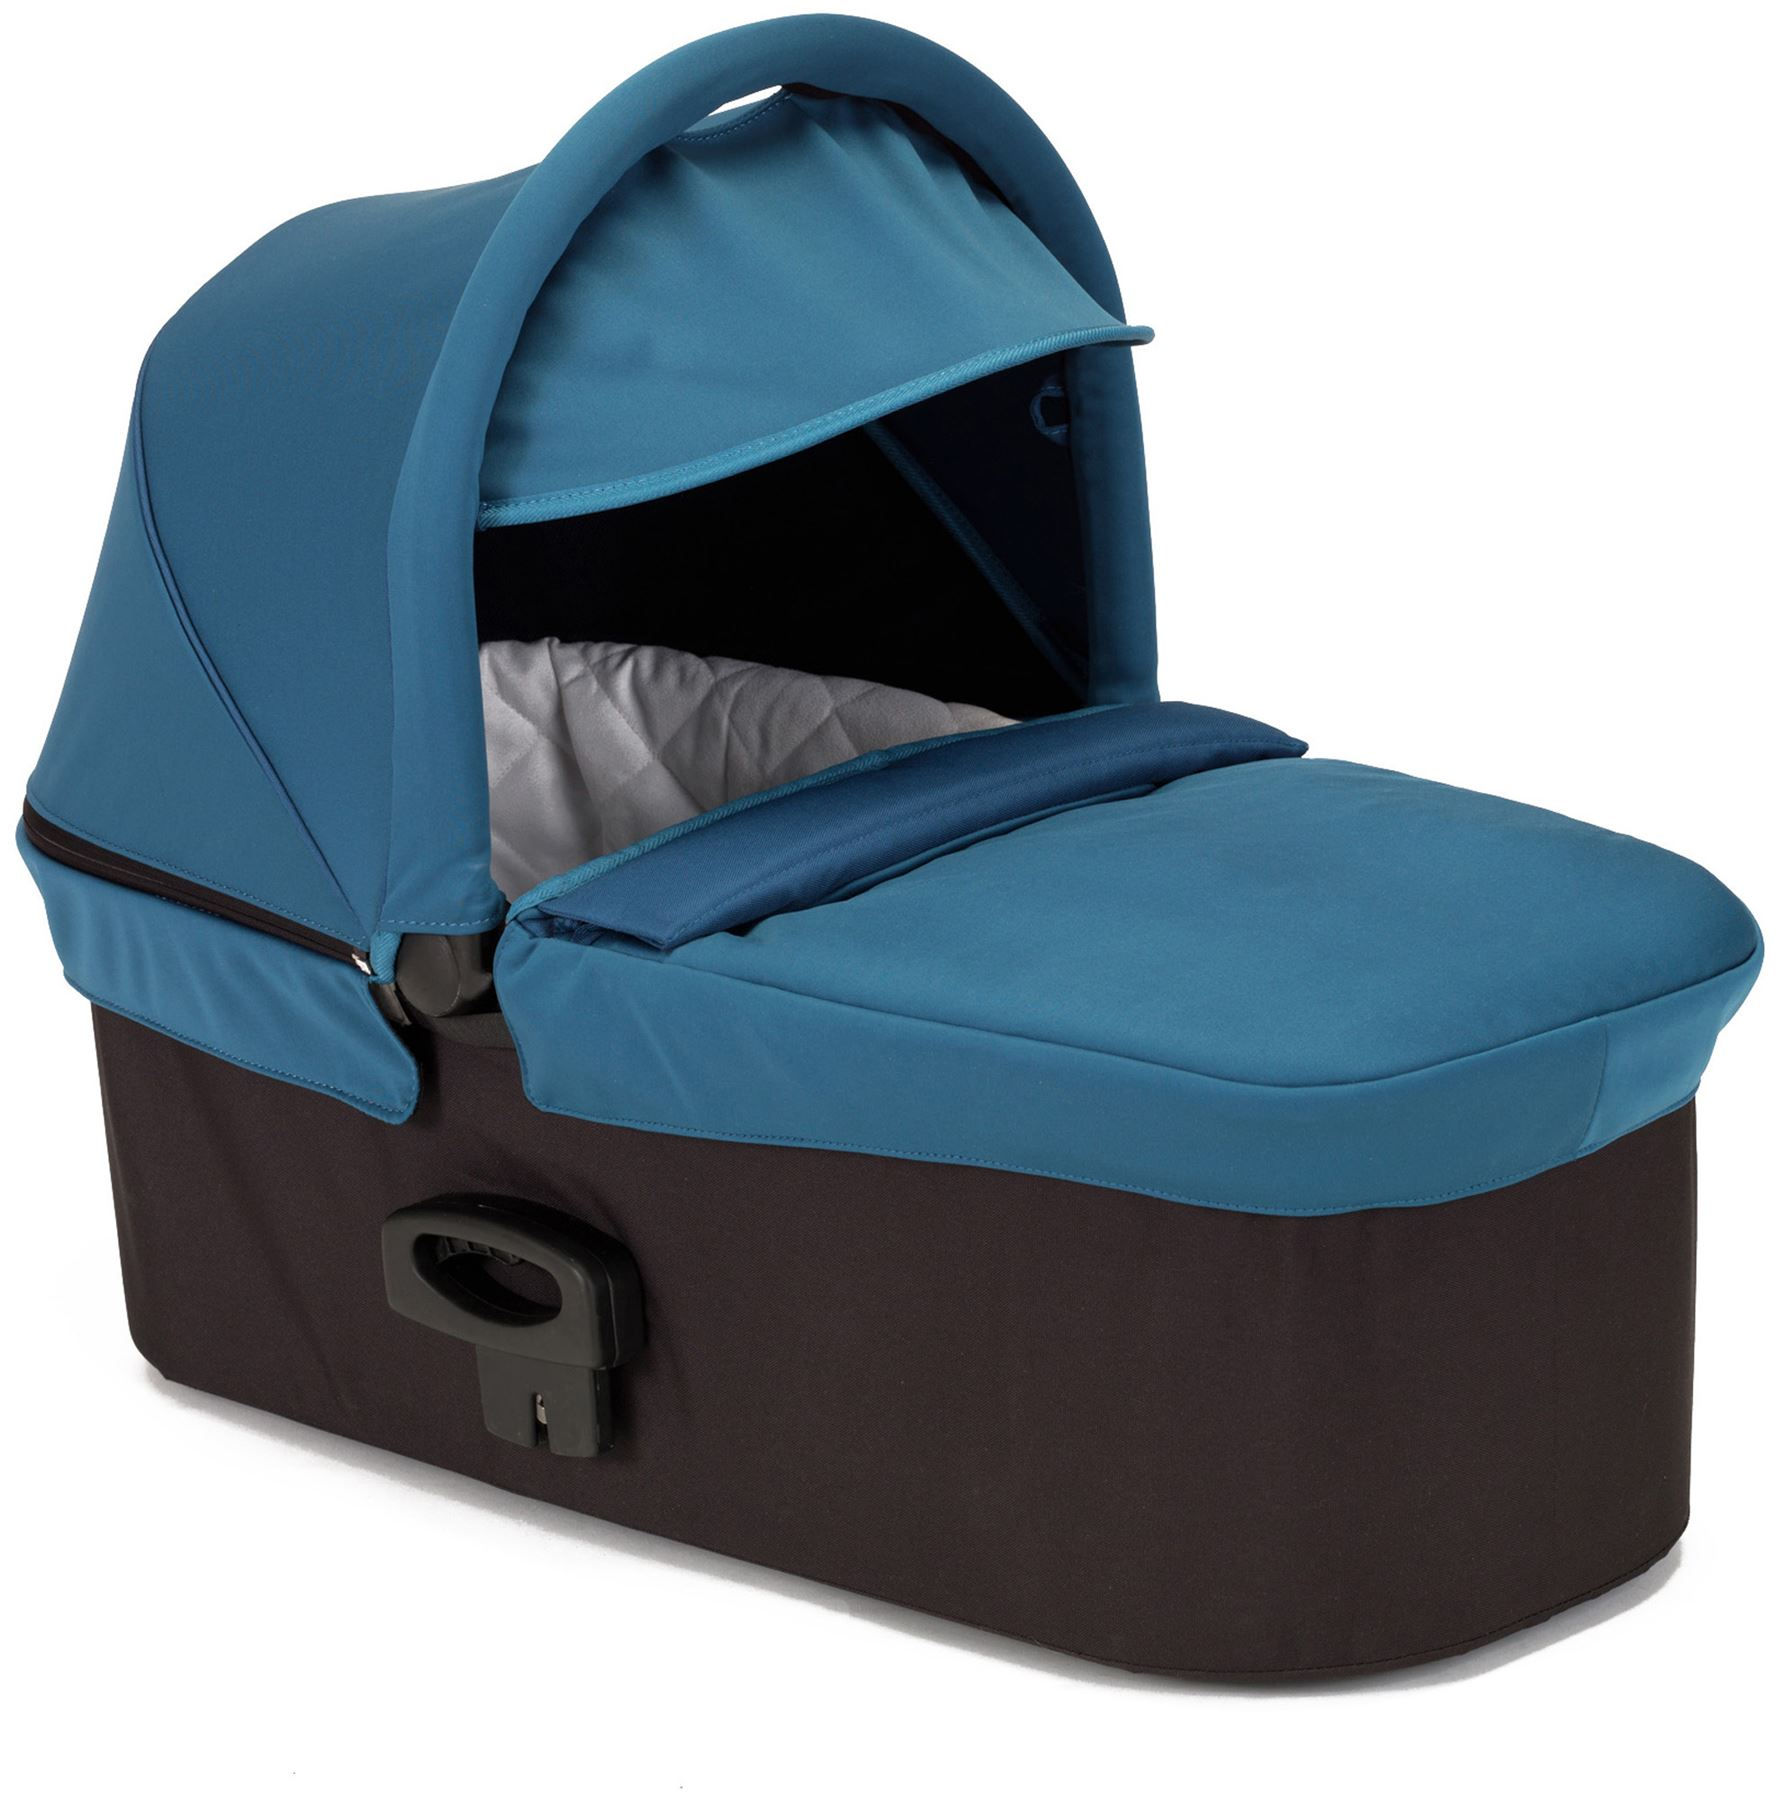 Baby Jogger DELUXE PRAM CARRYCOT TEAL Pushchair Buggy Accessory BN